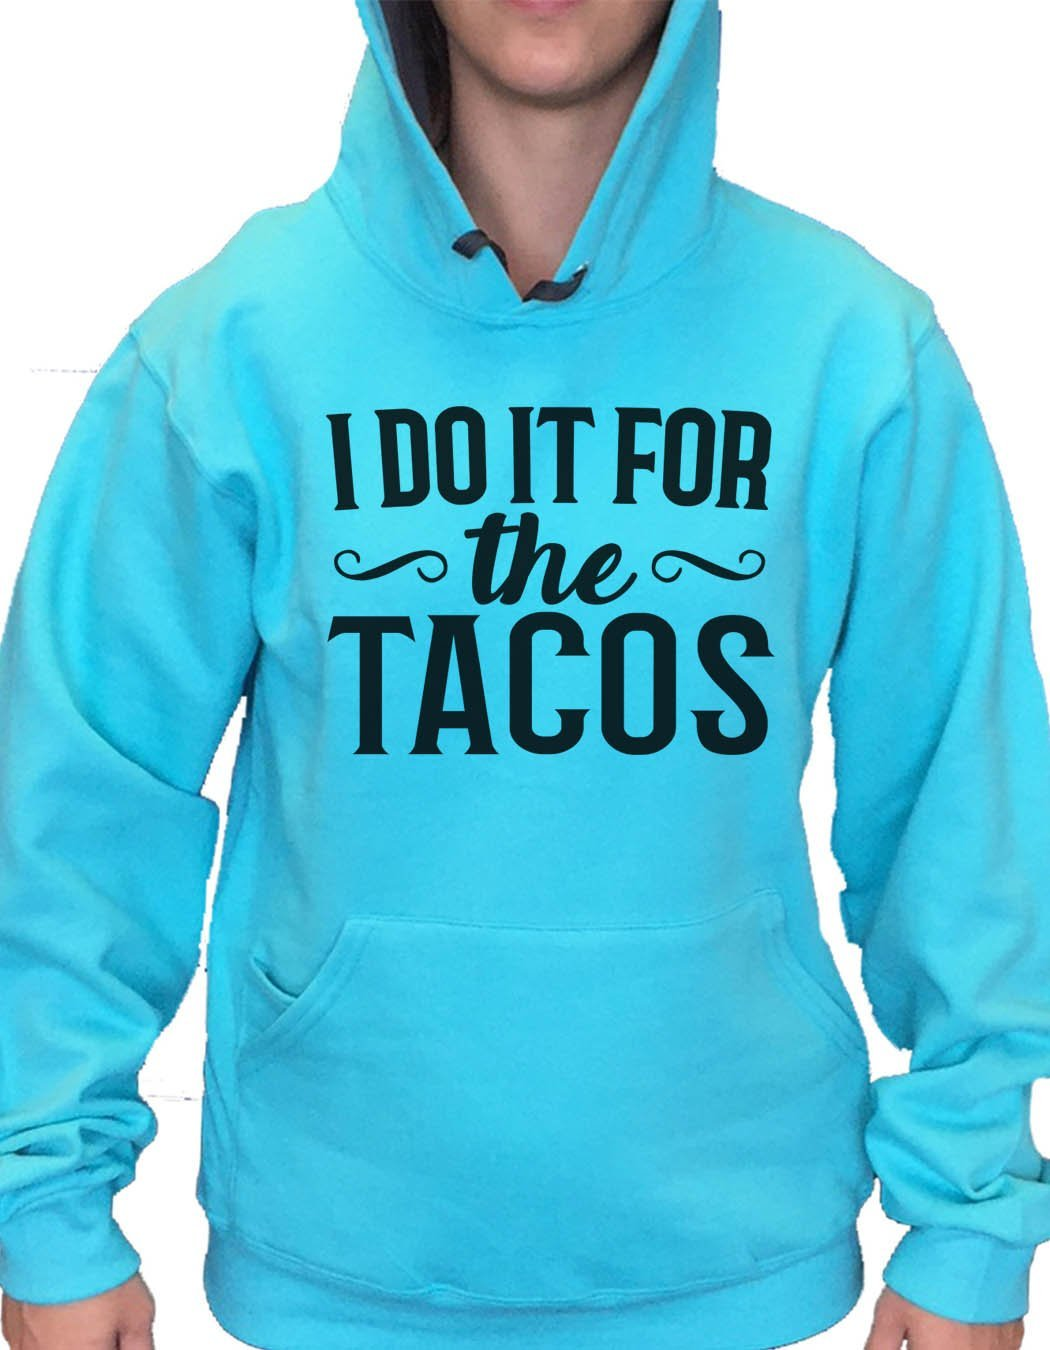 UNISEX HOODIE - I Do It For The Tacos - FUNNY MENS AND WOMENS HOODED SWEATSHIRTS - 2121 Funny Shirt Small / Turquoise